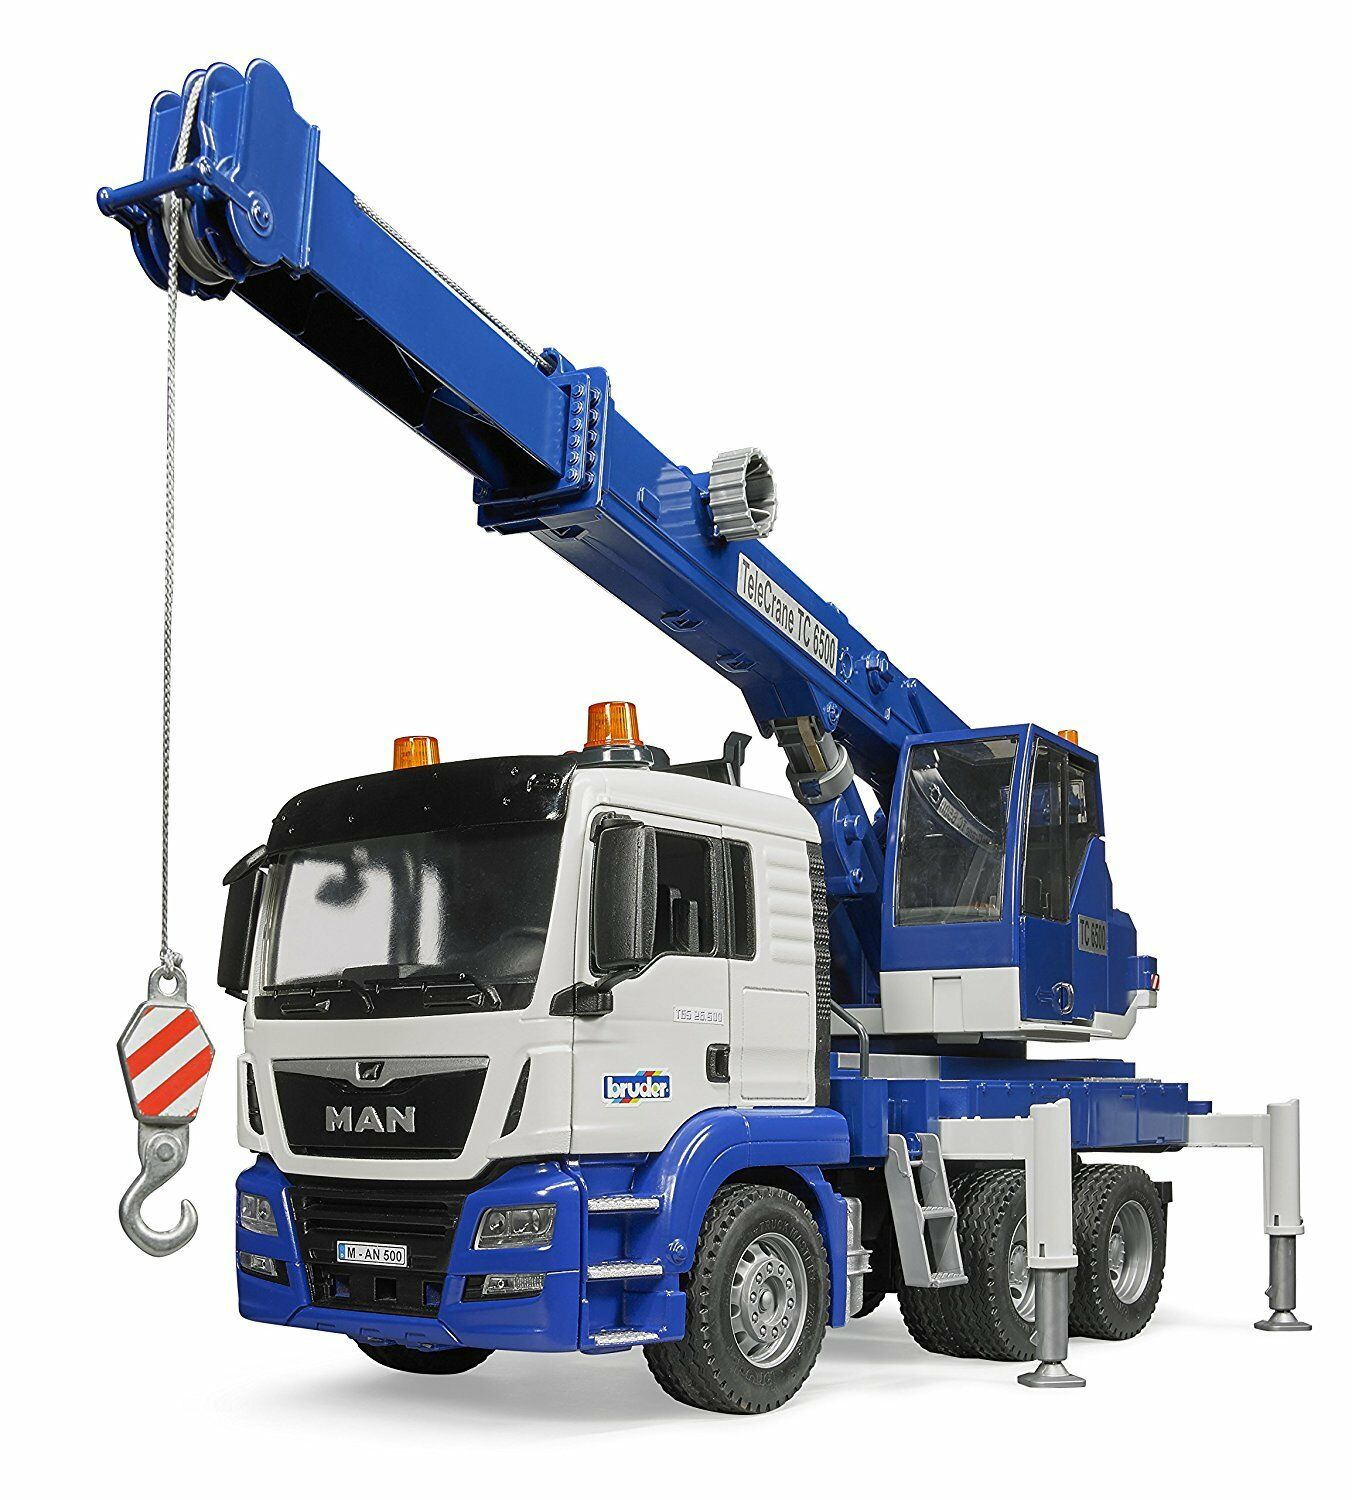 Frère on tgs tgs tgs grue camion avec Light & sound 03770 camions kranlaster NEUF 917355